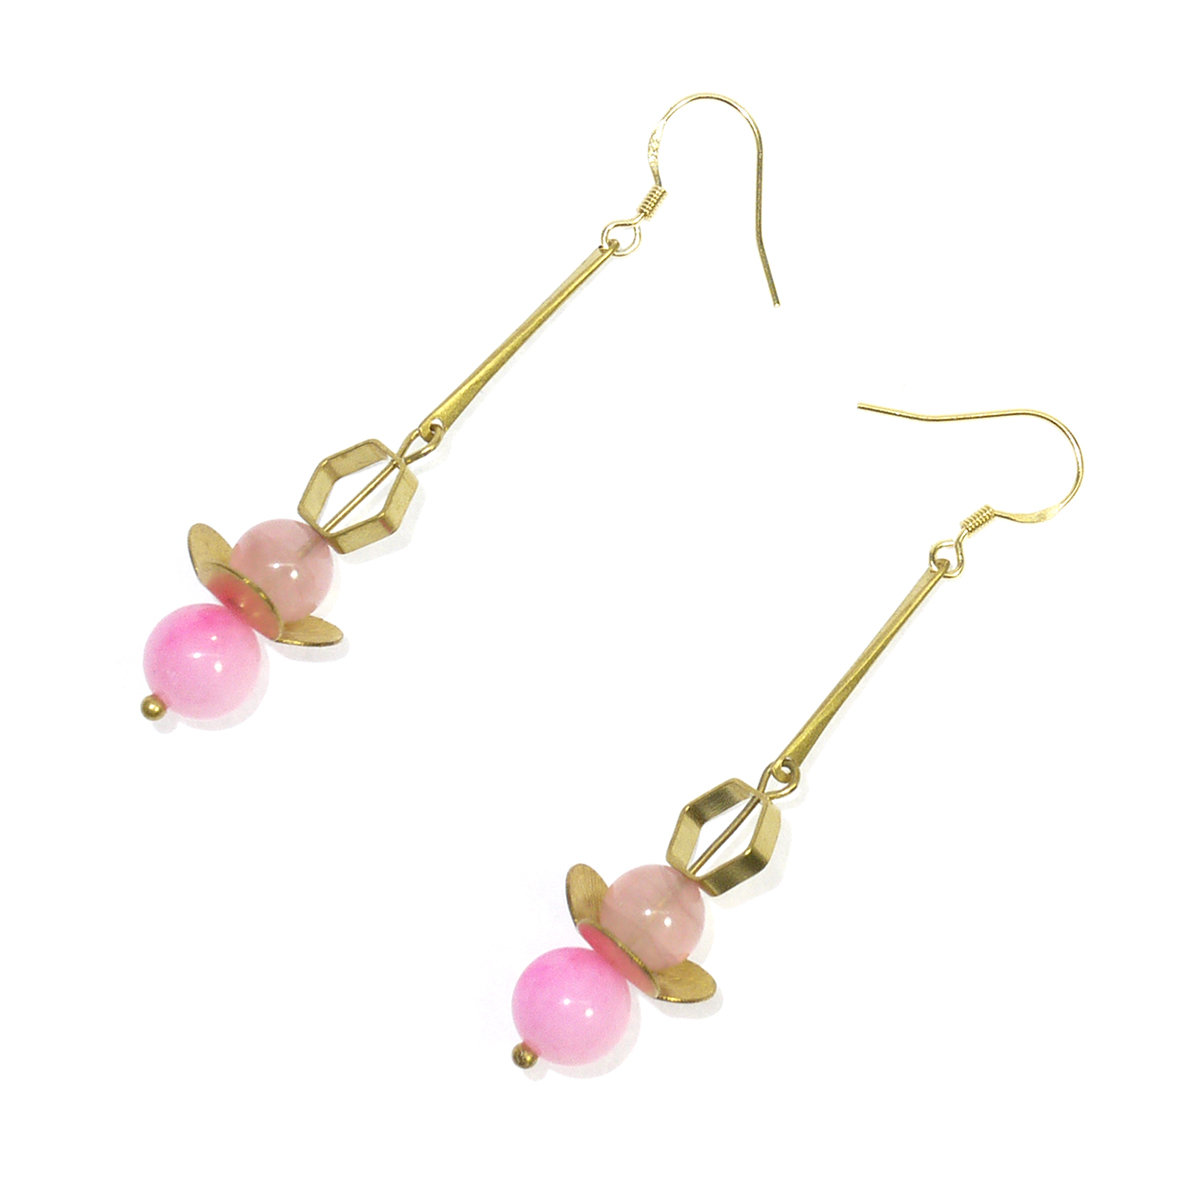 Sakura II — Pink beads, Golden finishing, HK design, gift, free shipping